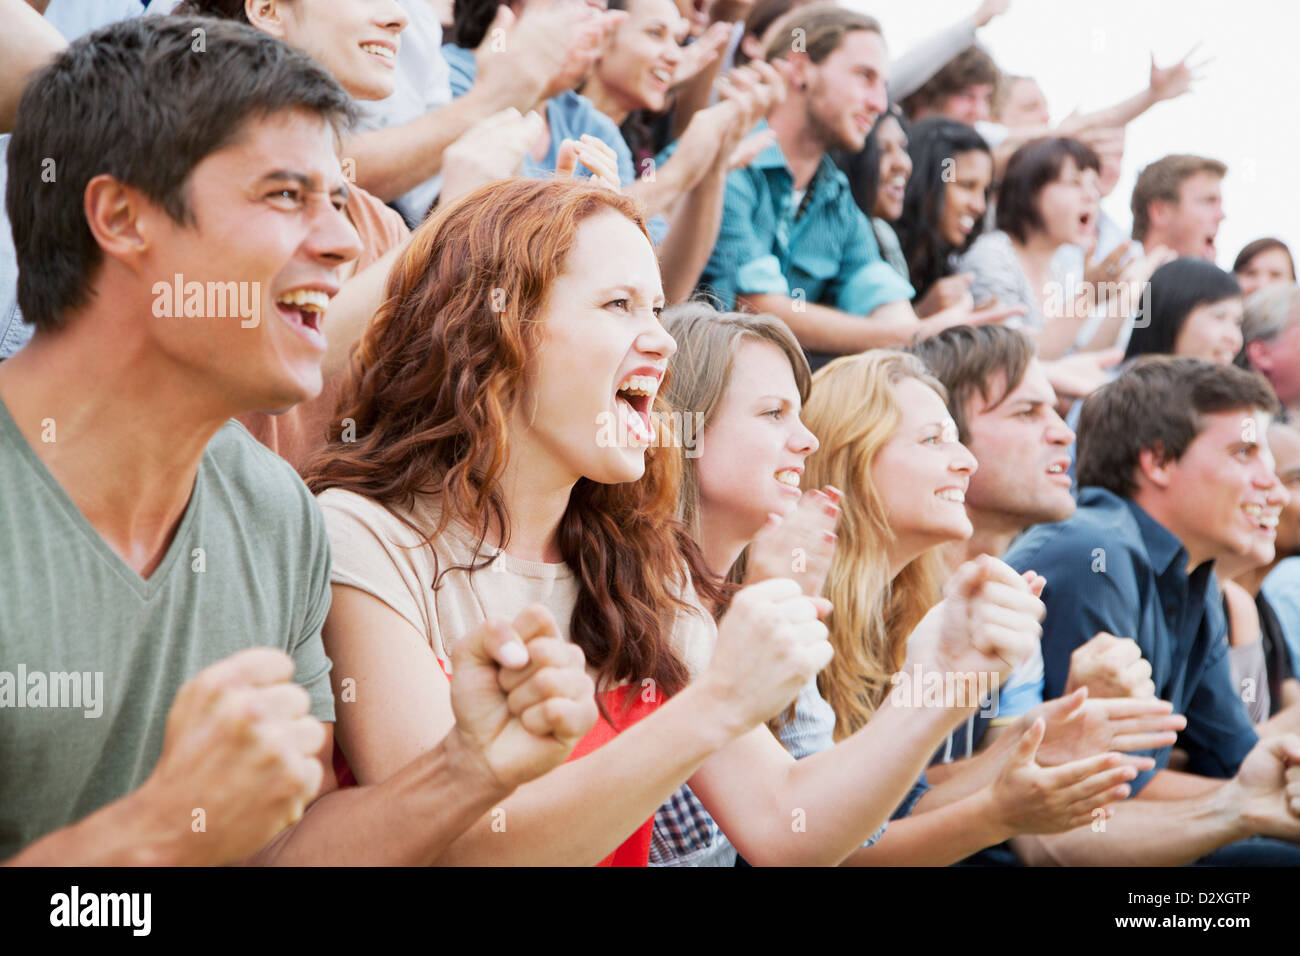 Fans cheering in crowd - Stock Image